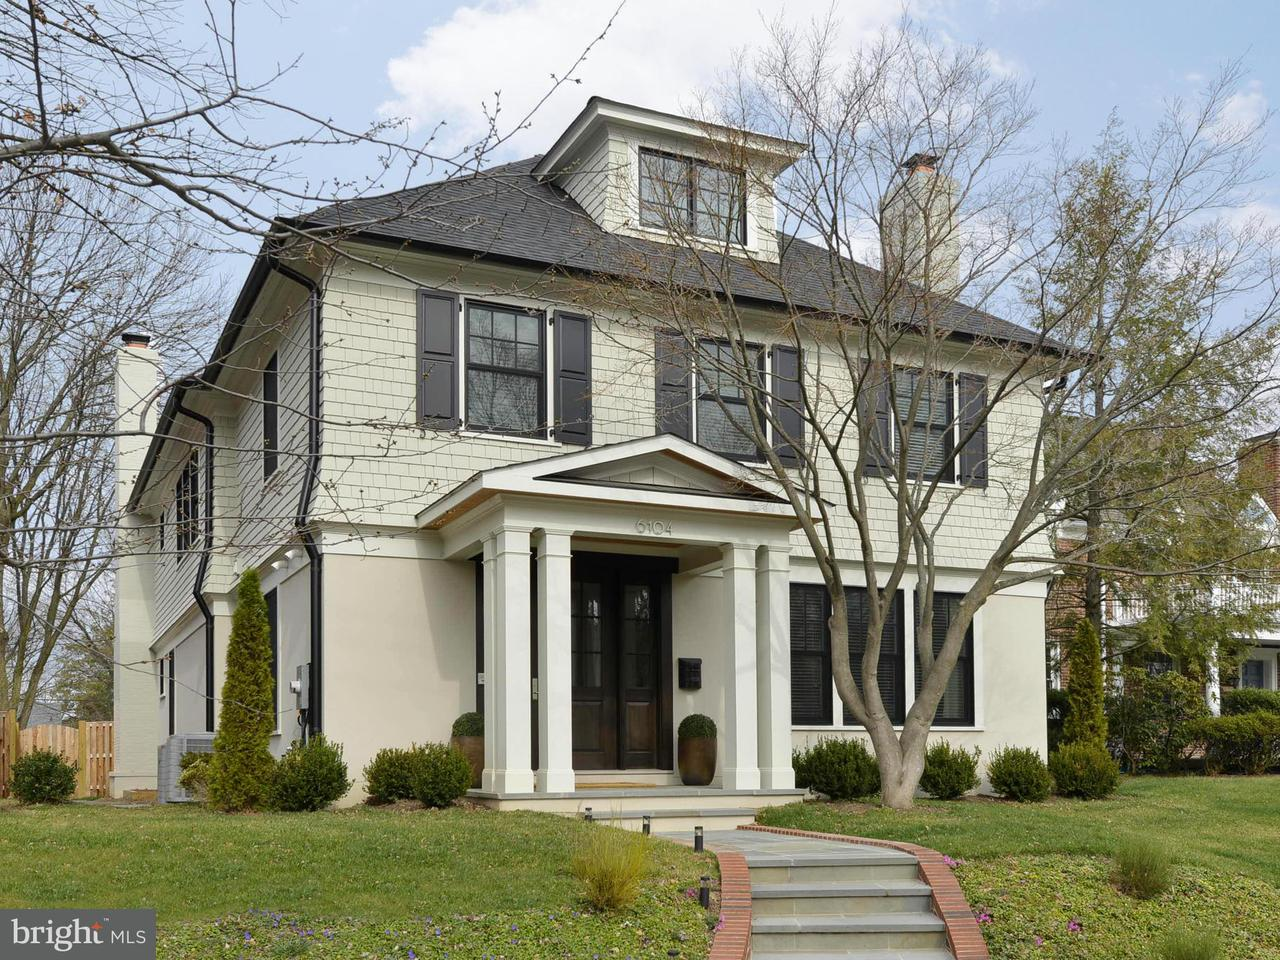 Single Family Home for Sale at 6517 Barnaby St Nw 6517 Barnaby St Nw Washington, District Of Columbia 20015 United States